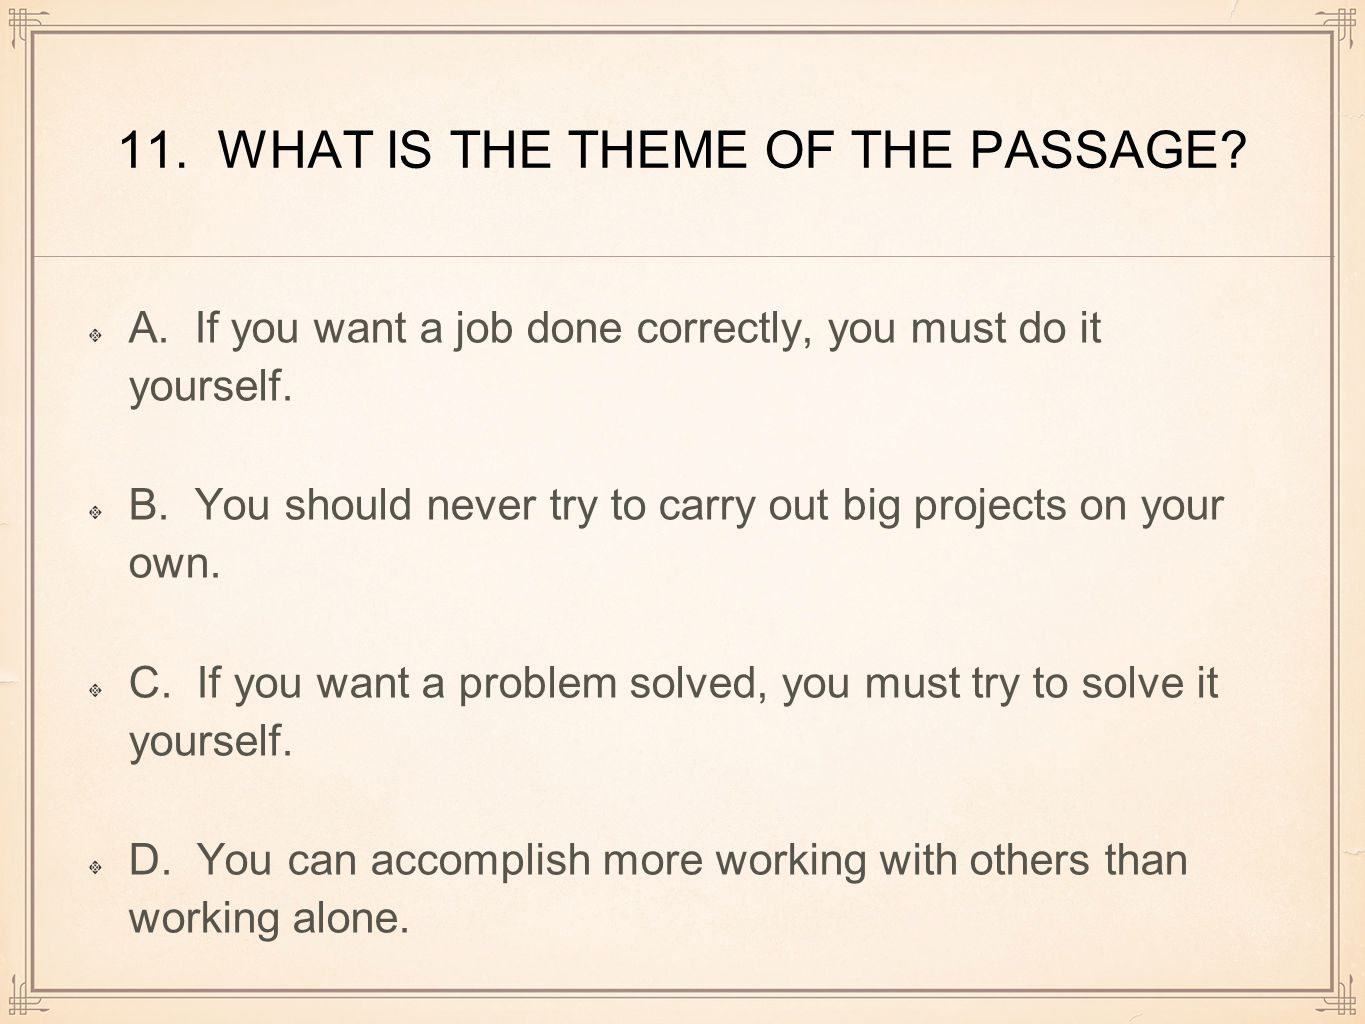 11. WHAT IS THE THEME OF THE PASSAGE